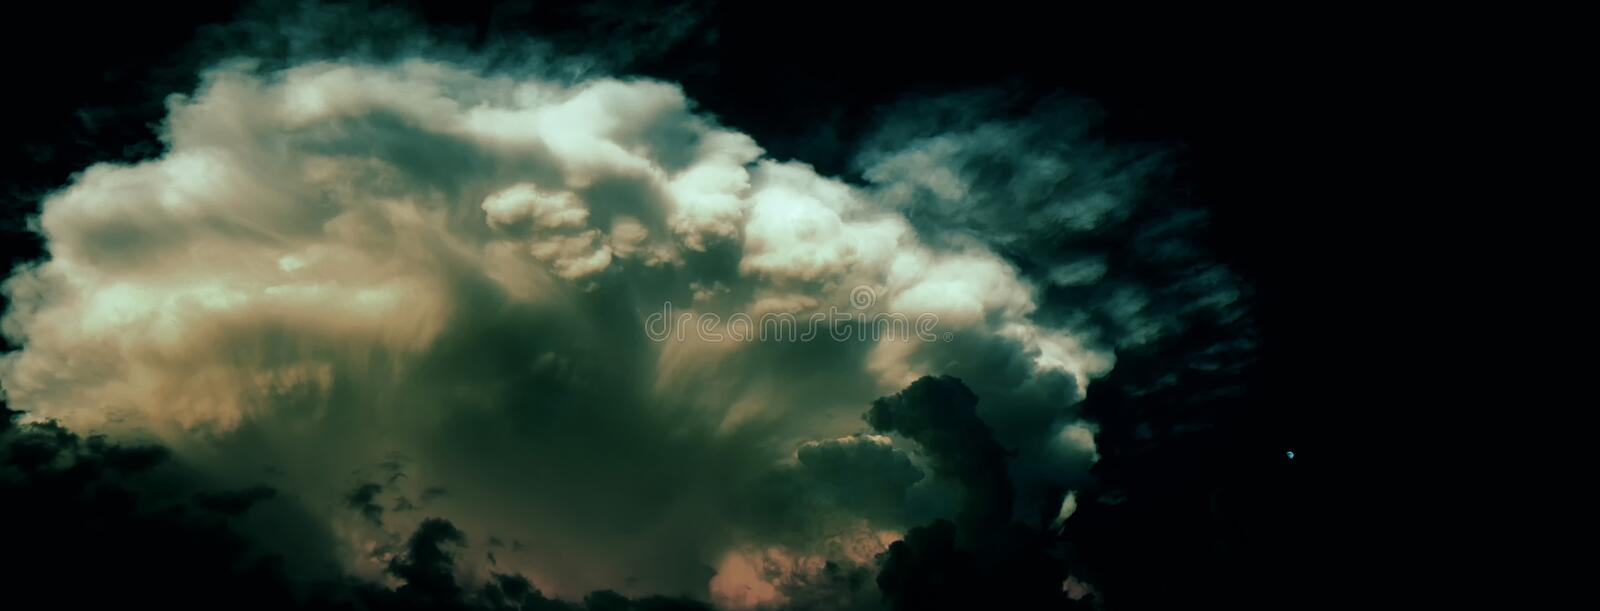 Big dramatic storm cloud probably cumulonimbus at summer twylight beside small moon on the right side royalty free stock photos